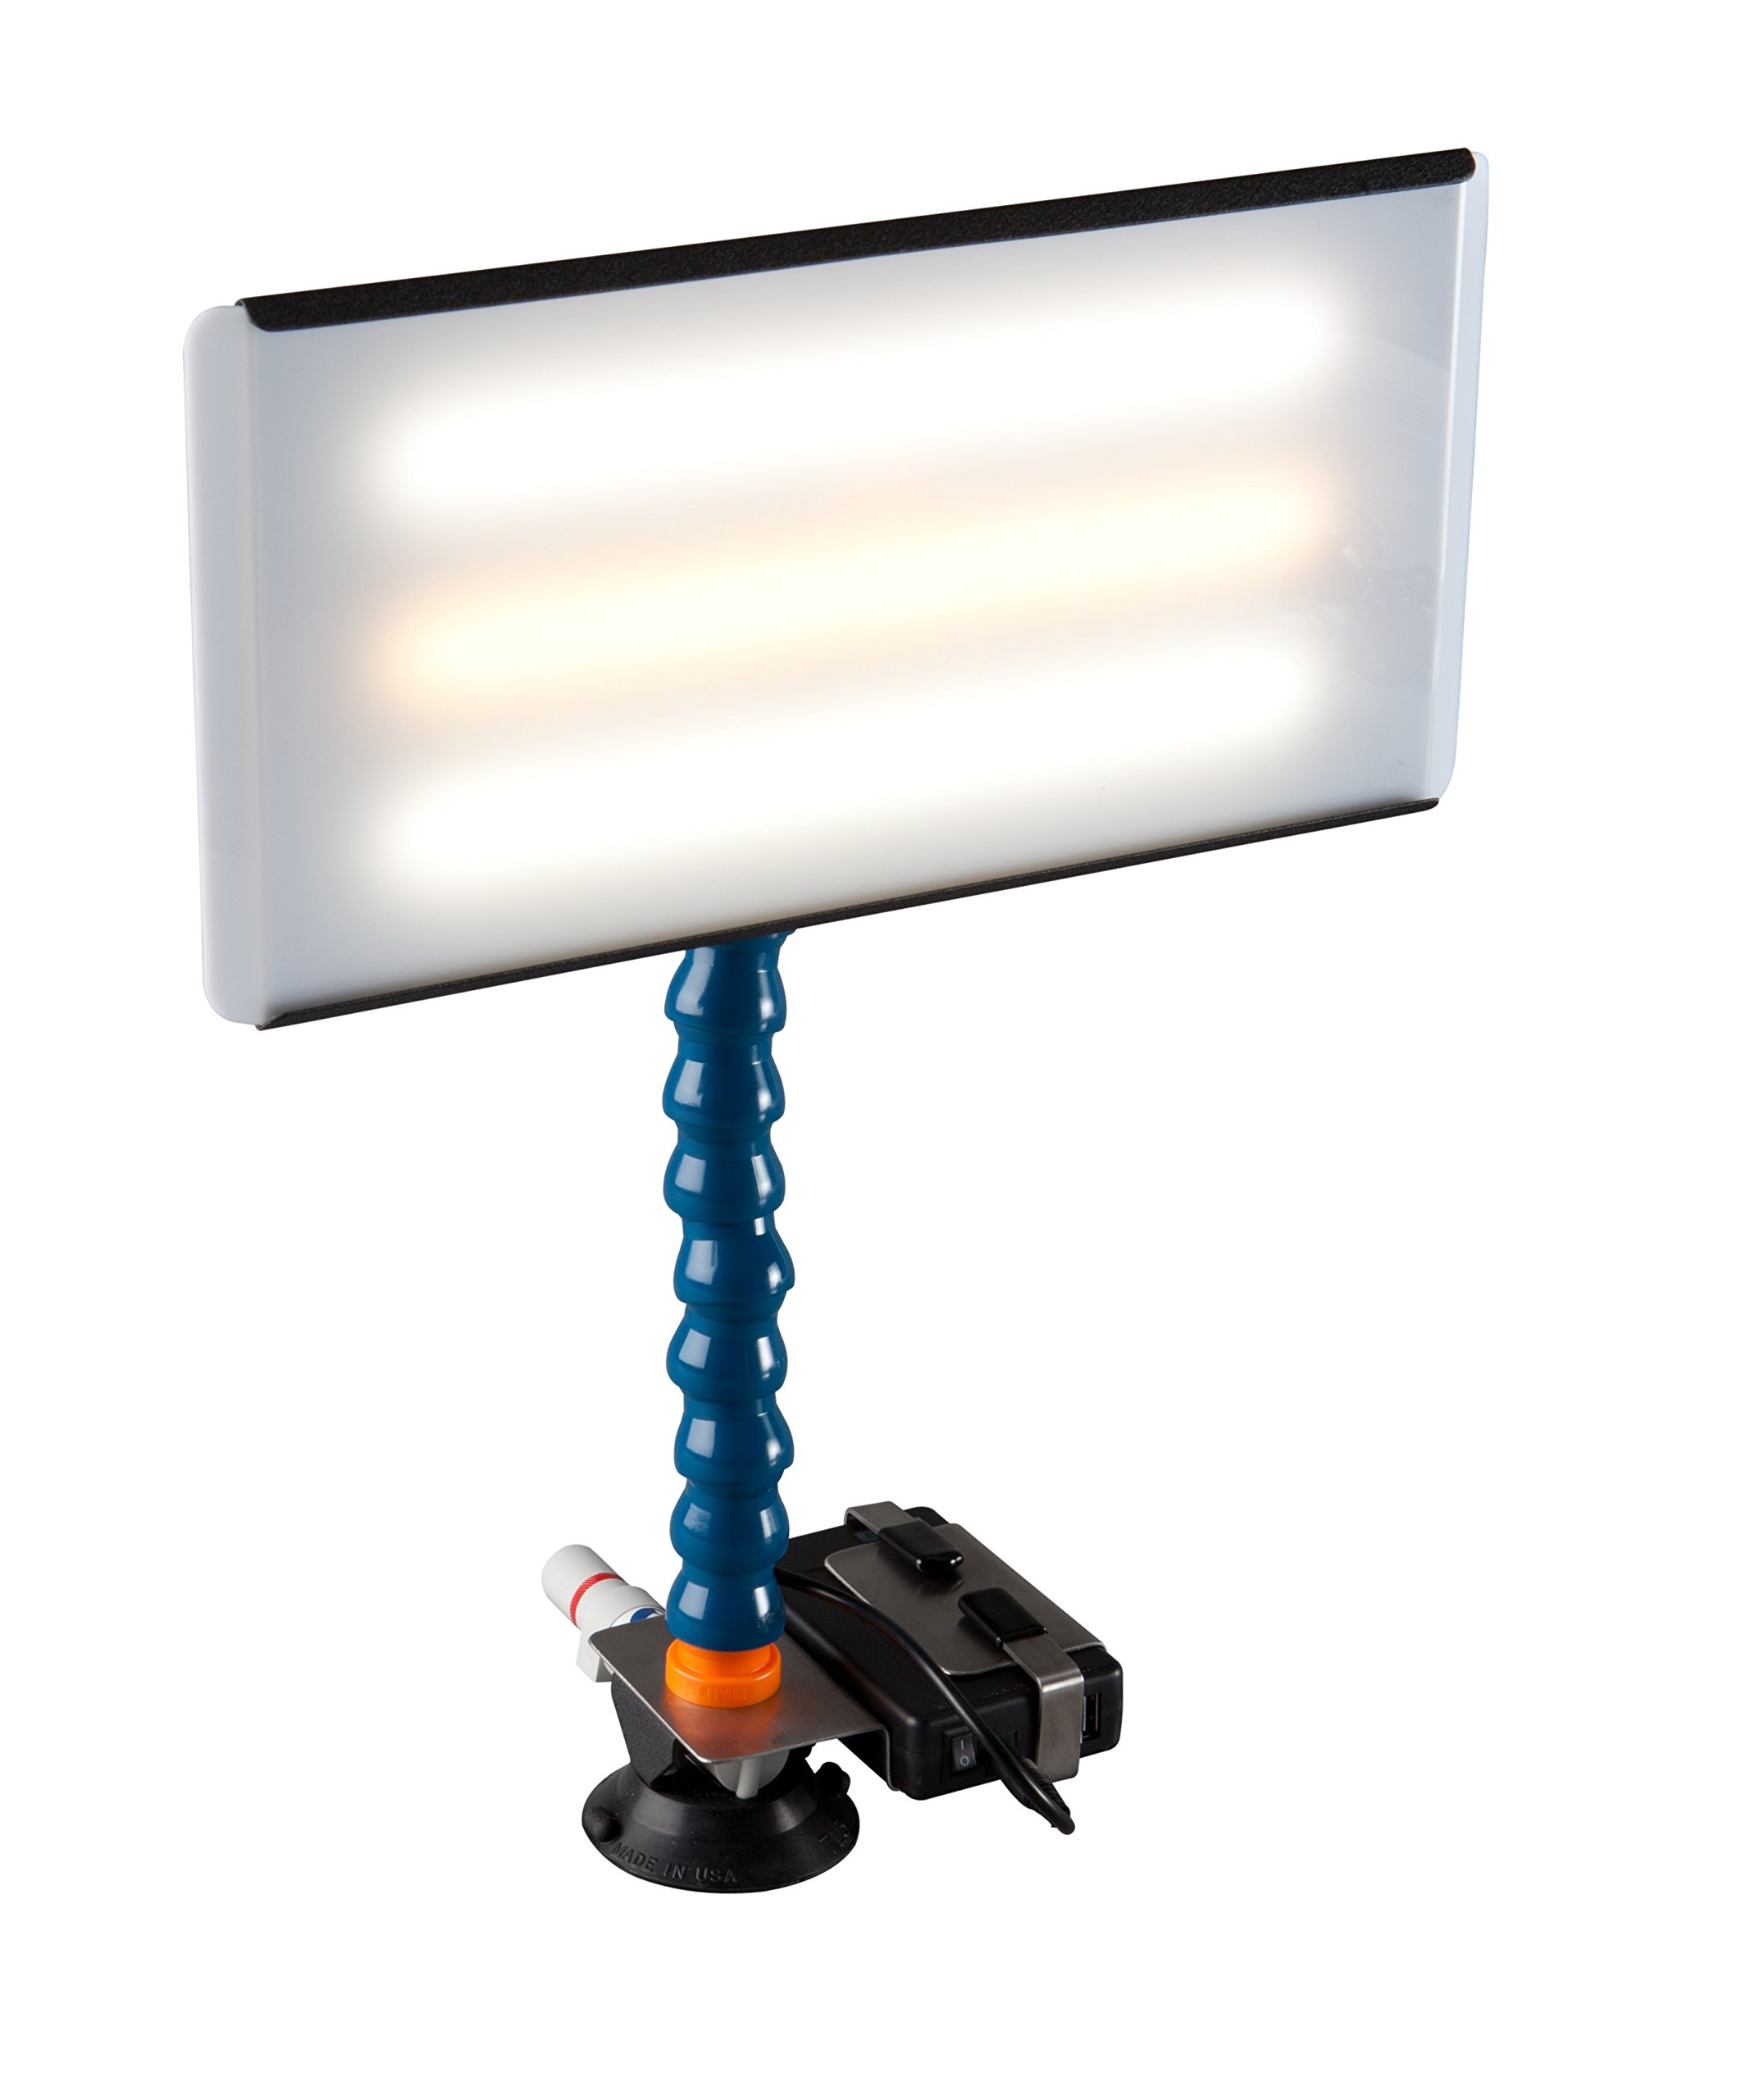 PC LED 133 PDR 13'' Portable 12V CWC LED Light with Battery Paintless Dent Repair